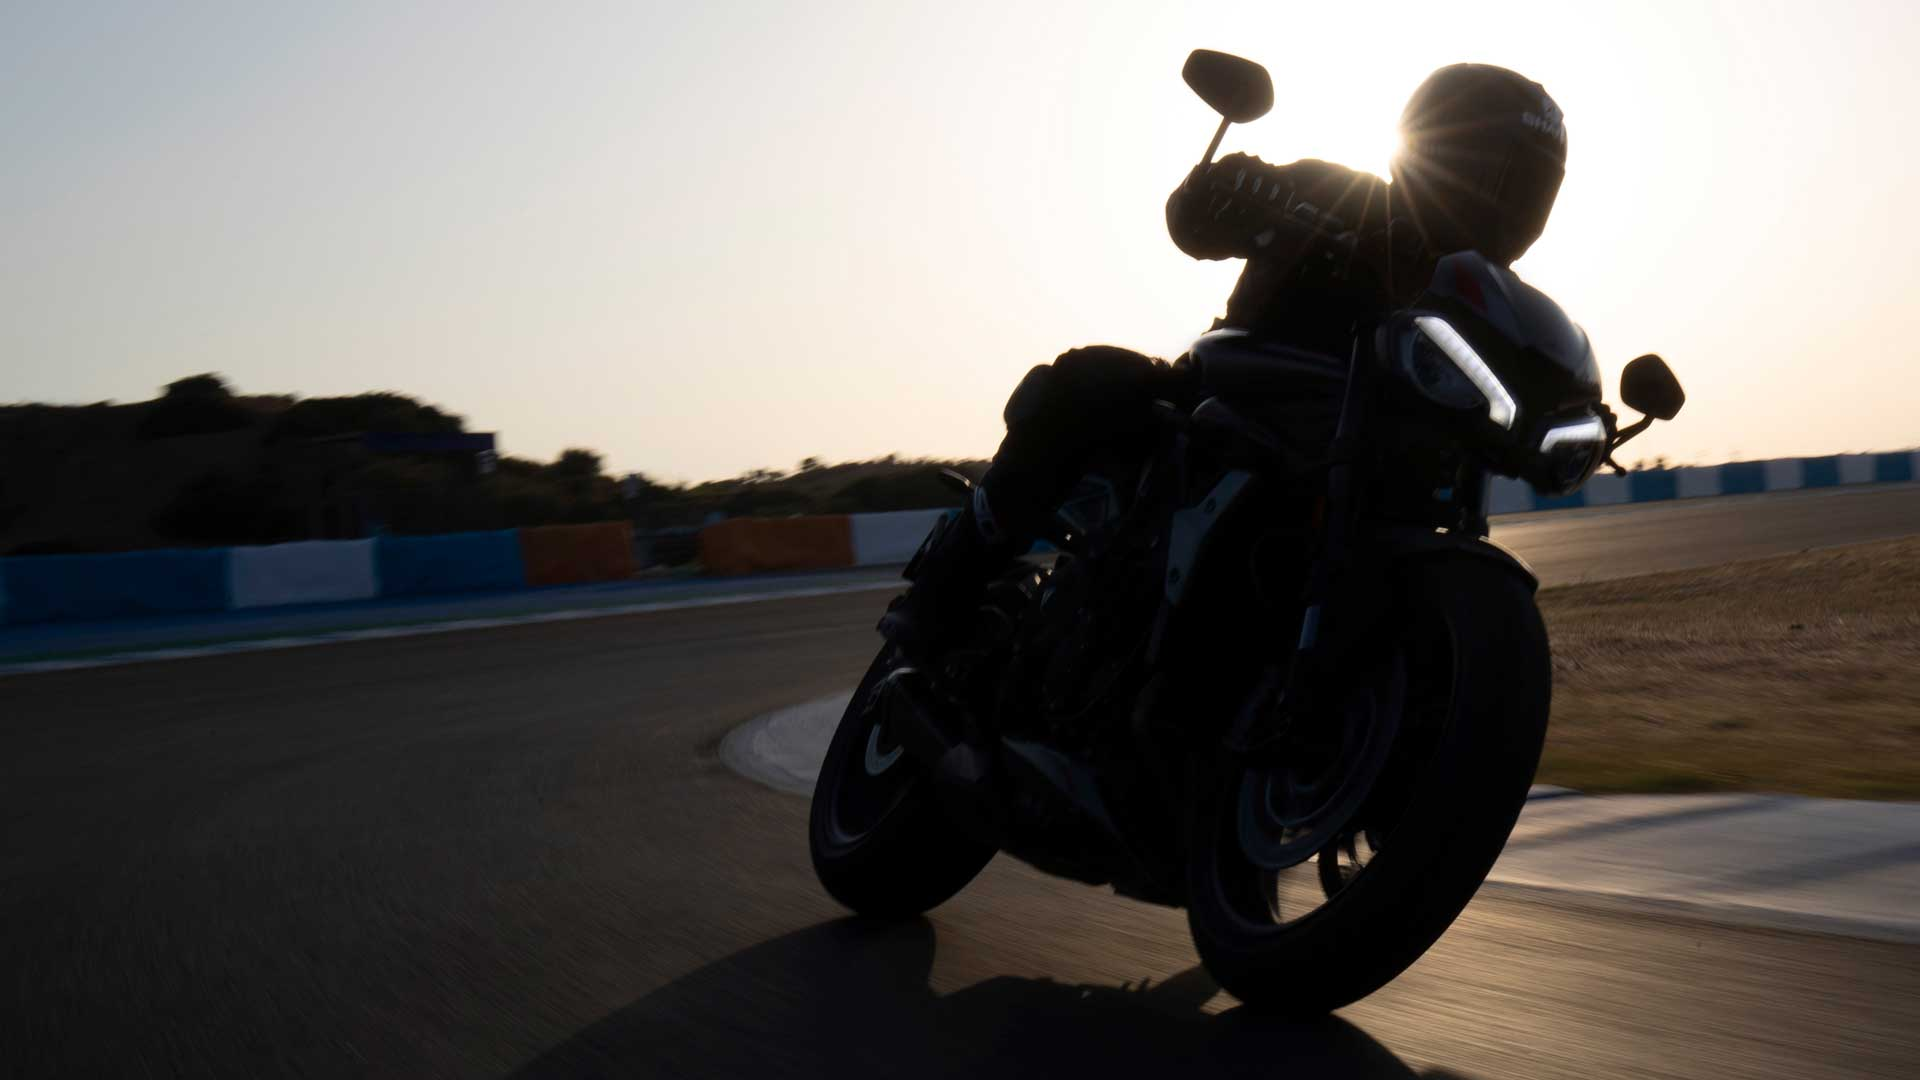 Tease shot of new Triumph Street Triple RS in action on racetrack